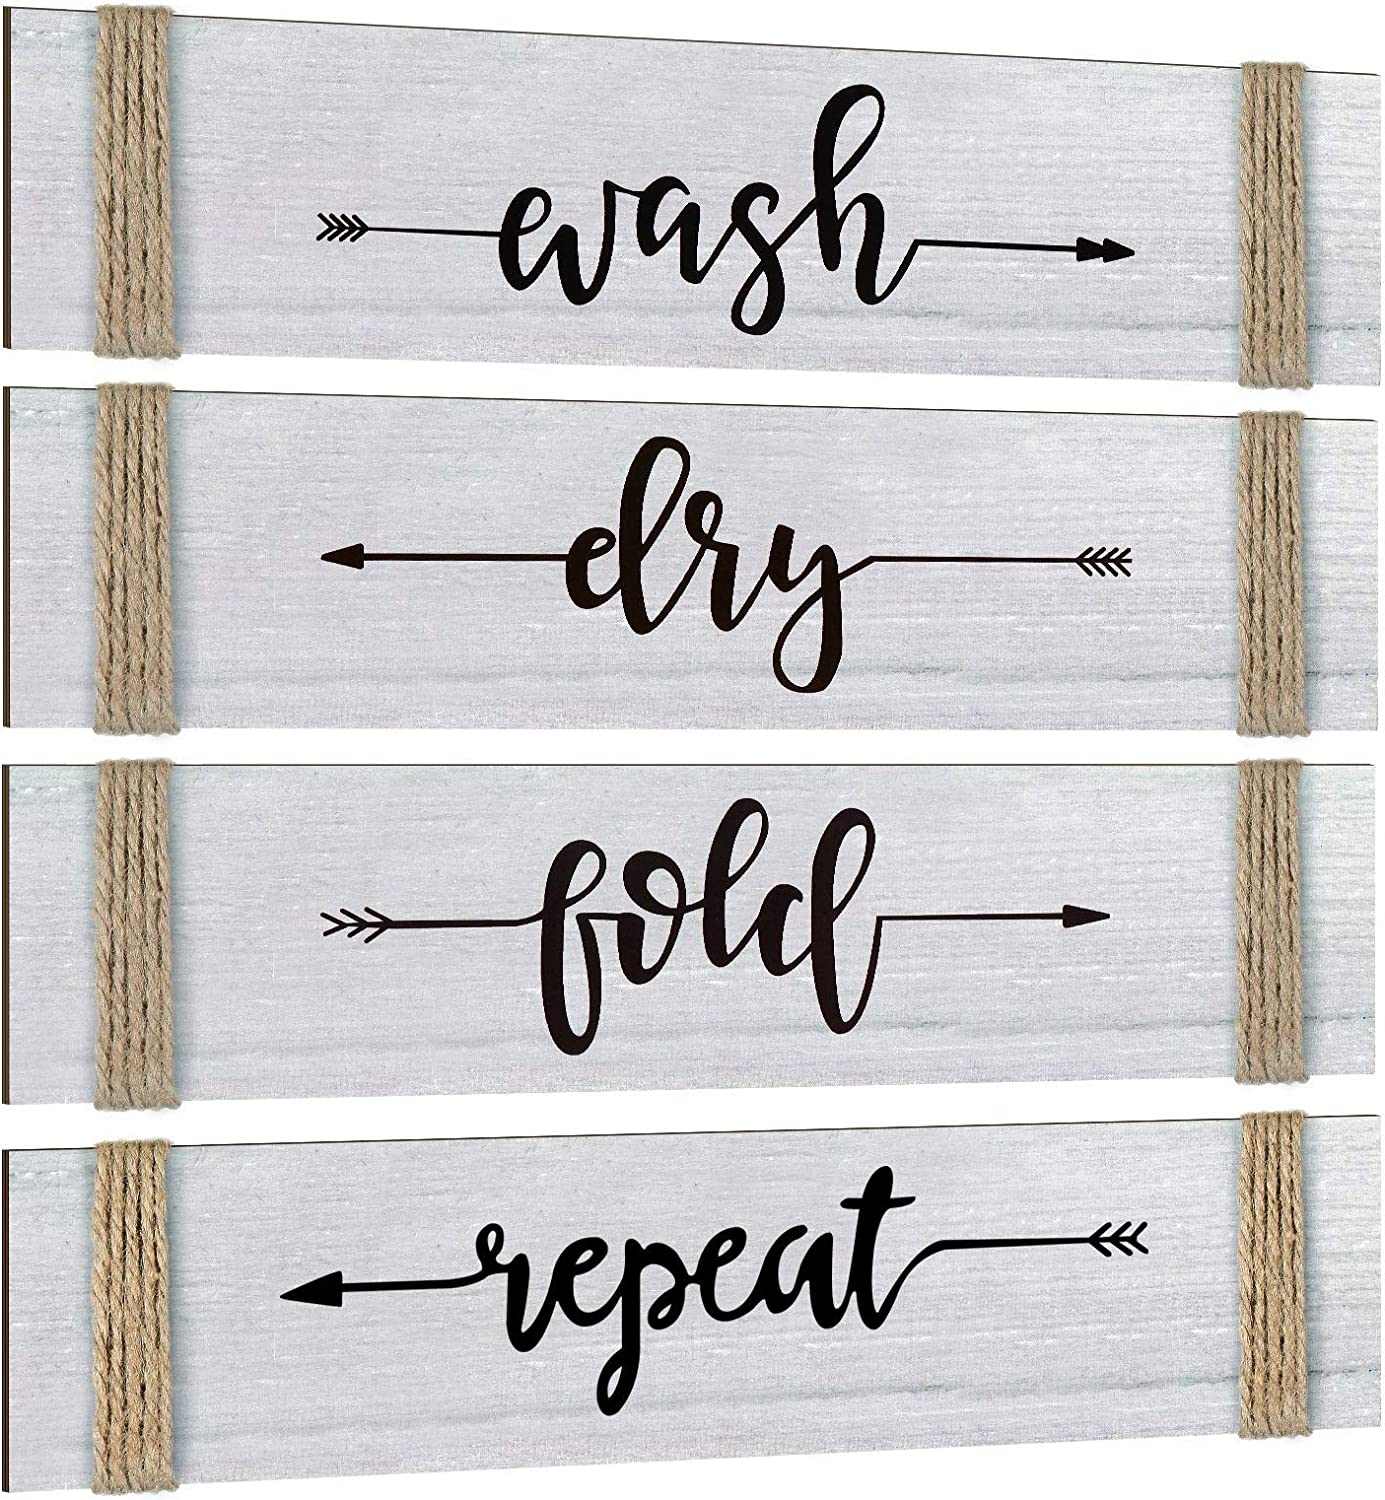 4 Pieces Laundry Room Decor Home Vintage Wooden Decoration Rustic Farmhouse Wall Wash Dry Fold Repeat Laundry Signs Wall Art with Twine for Decorating Home Wall Room, 12 x 3 x 0.28 Inch